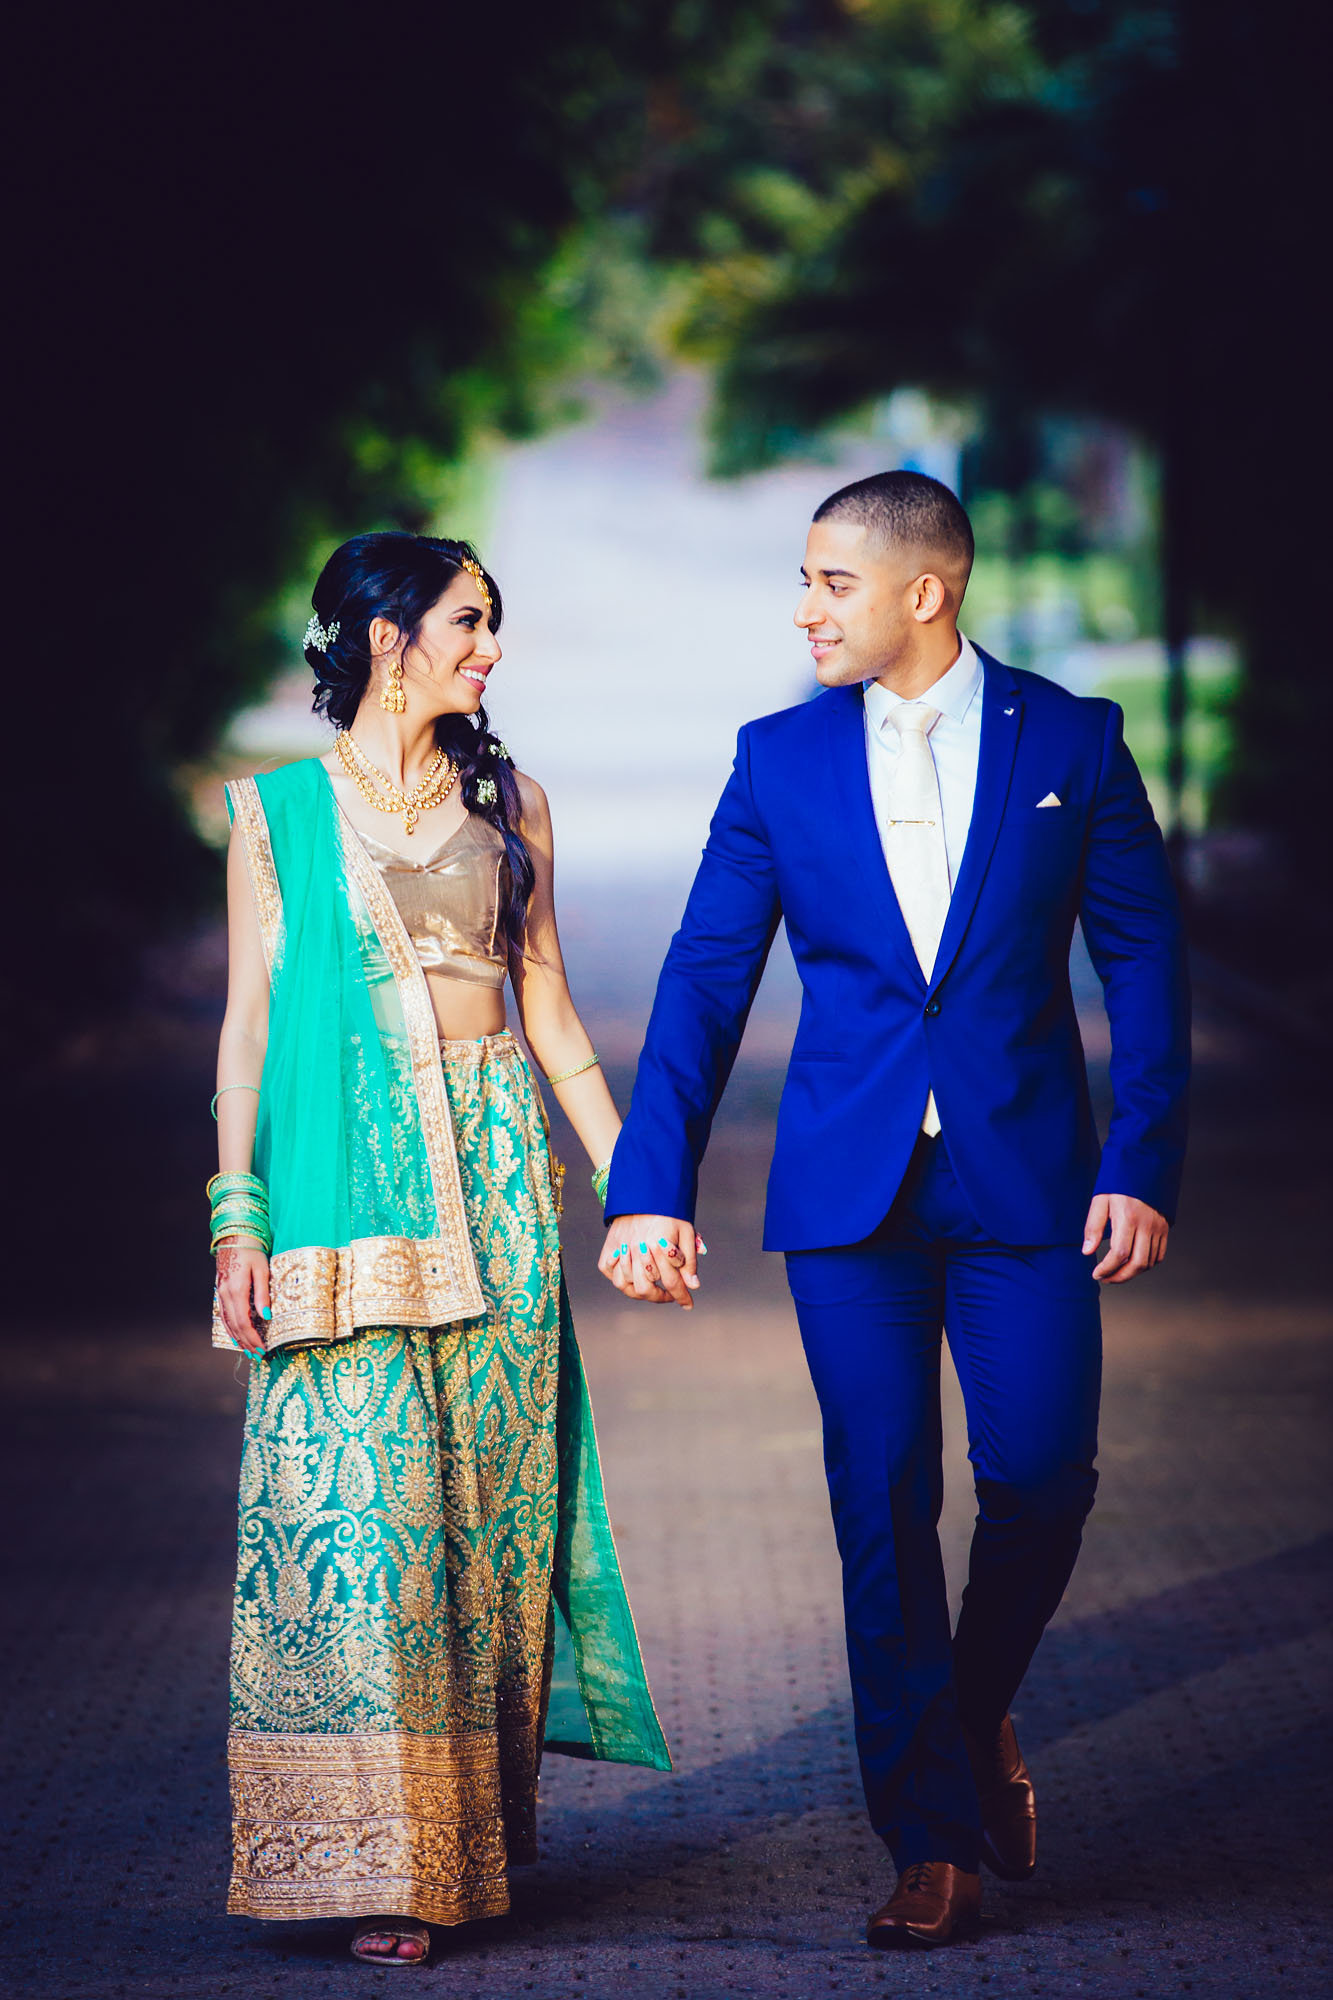 Ashmini_Shemsher_Indian_Engagement_Party_Ceremony_Portraits_BrisbaneCity_AnnaOsetroff_Photographer_Factory51_Reception_Web-35